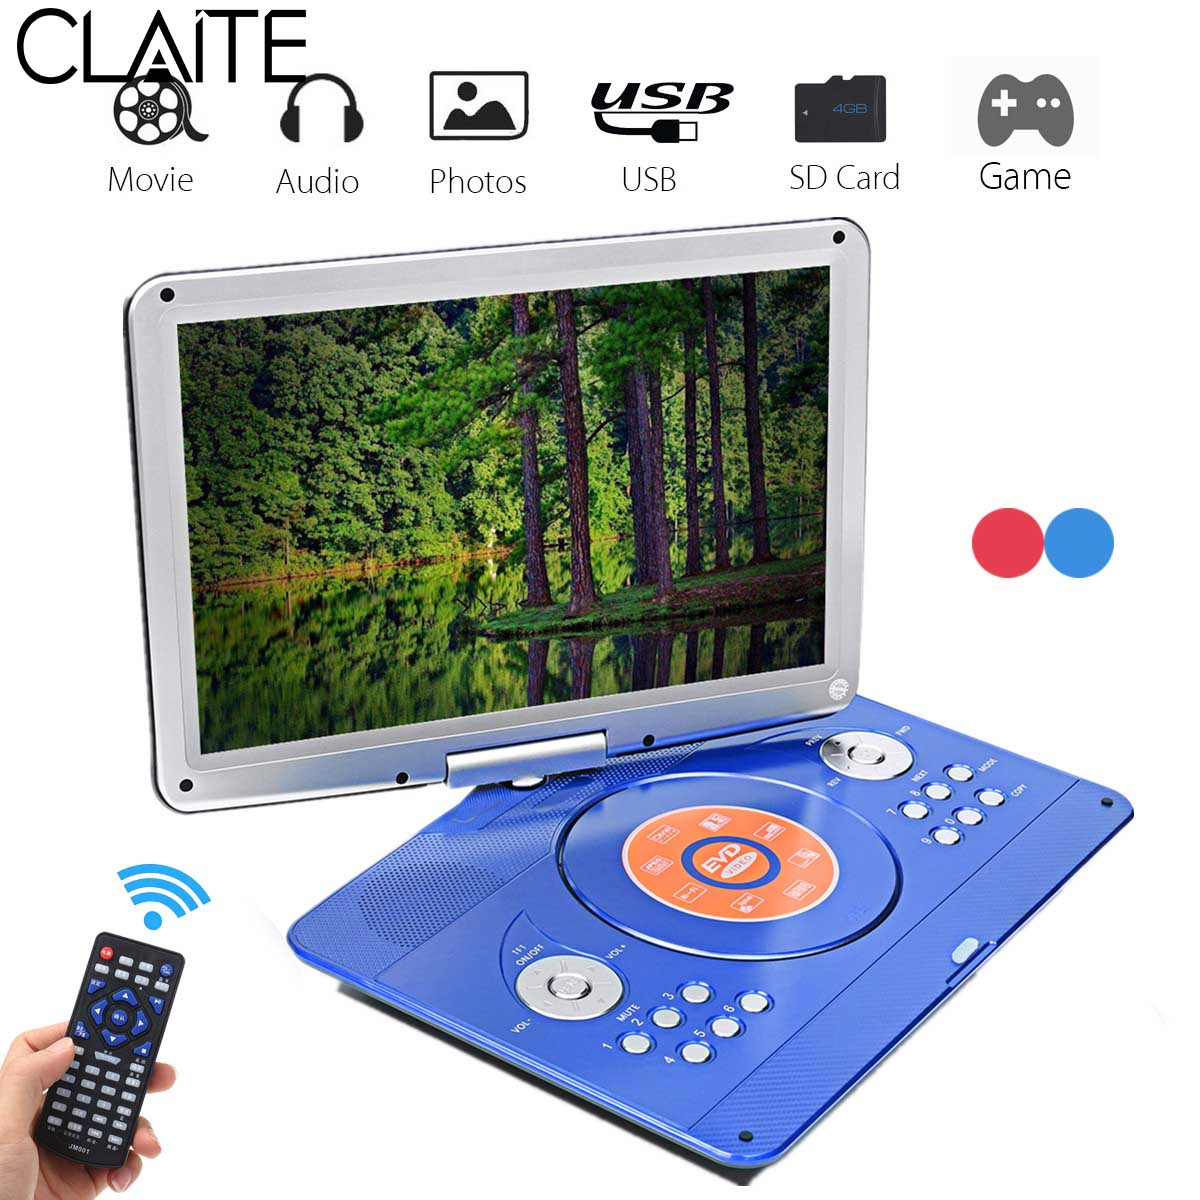 14 inch Portable DVD Player Rotatable Screen Multi Media DVD for Game TV Function Support MP3 MP4 VCD CD Player for Home and Car14 inch Portable DVD Player Rotatable Screen Multi Media DVD for Game TV Function Support MP3 MP4 VCD CD Player for Home and Car